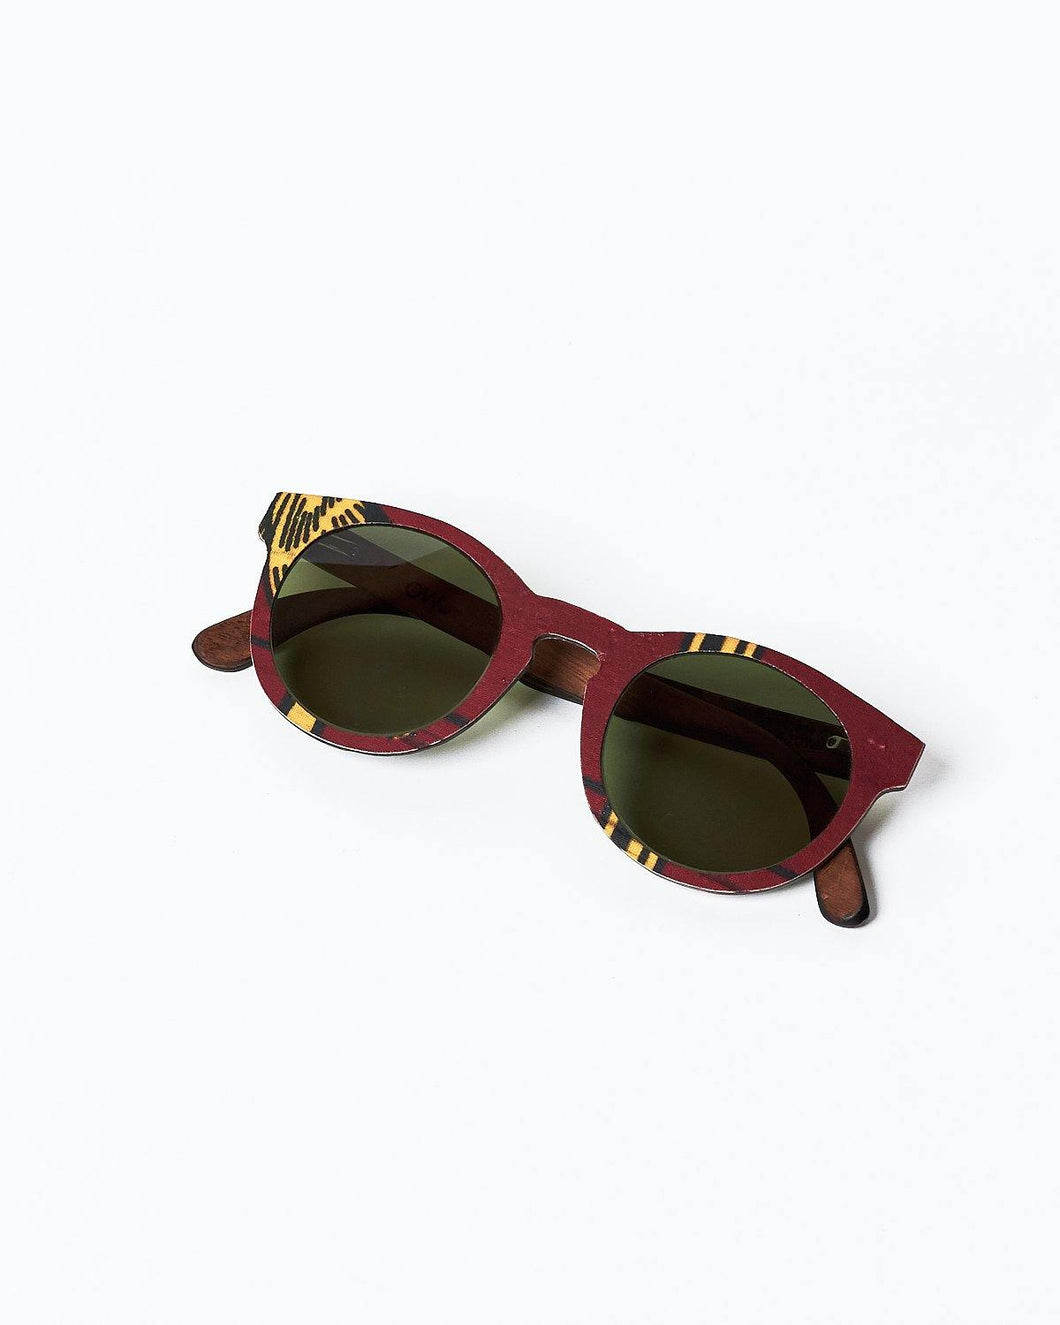 BALLO OWL Sunglasses in Red African fabric